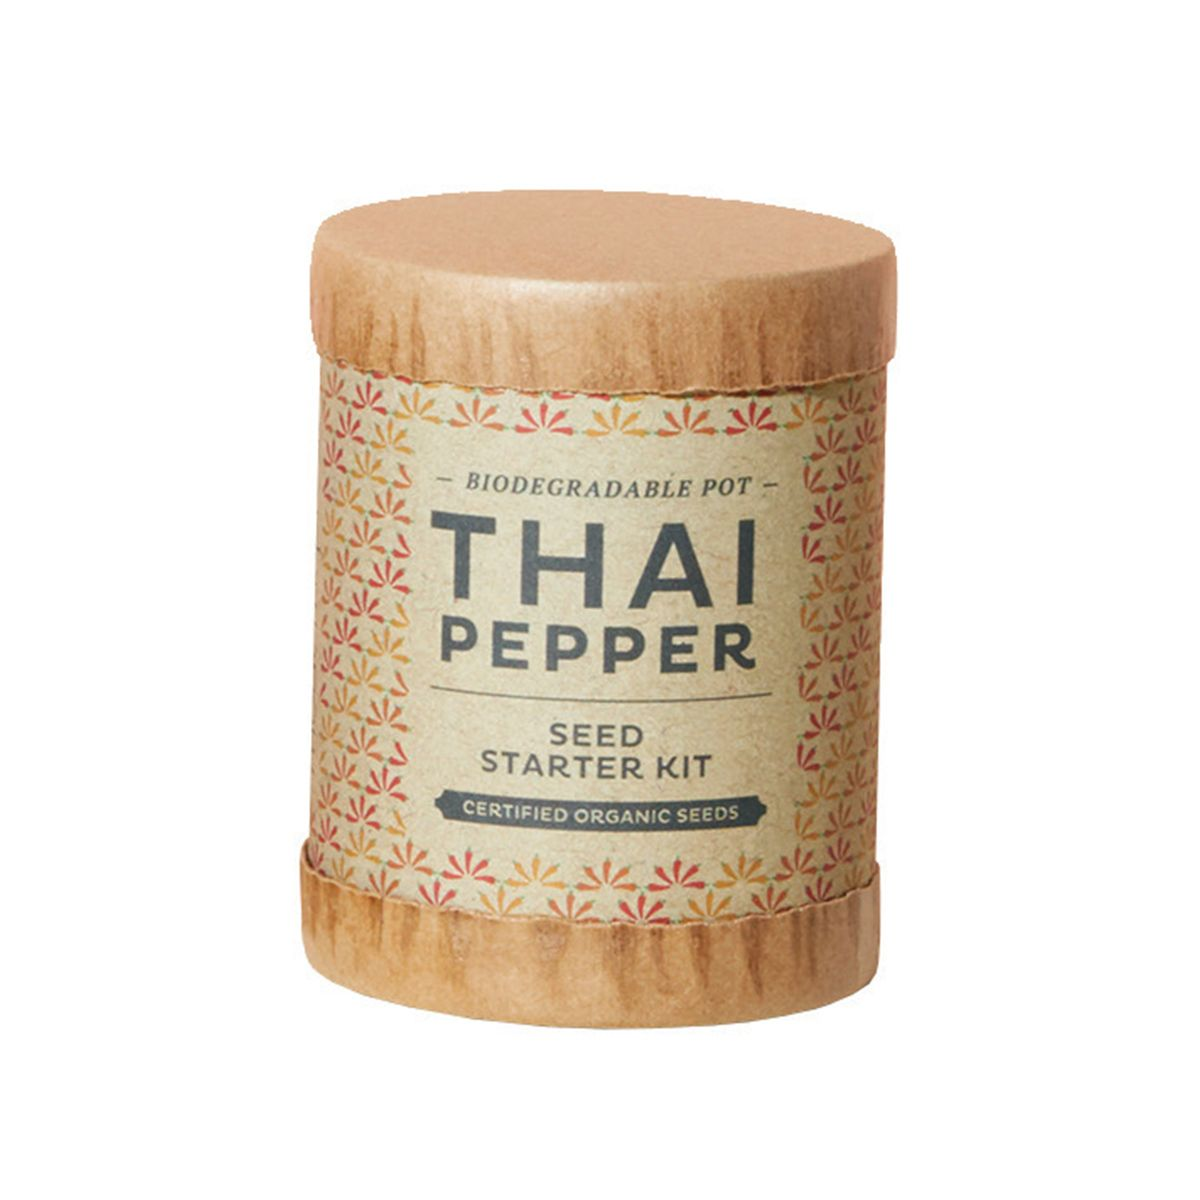 Thai Pepper Seed Starter Kit